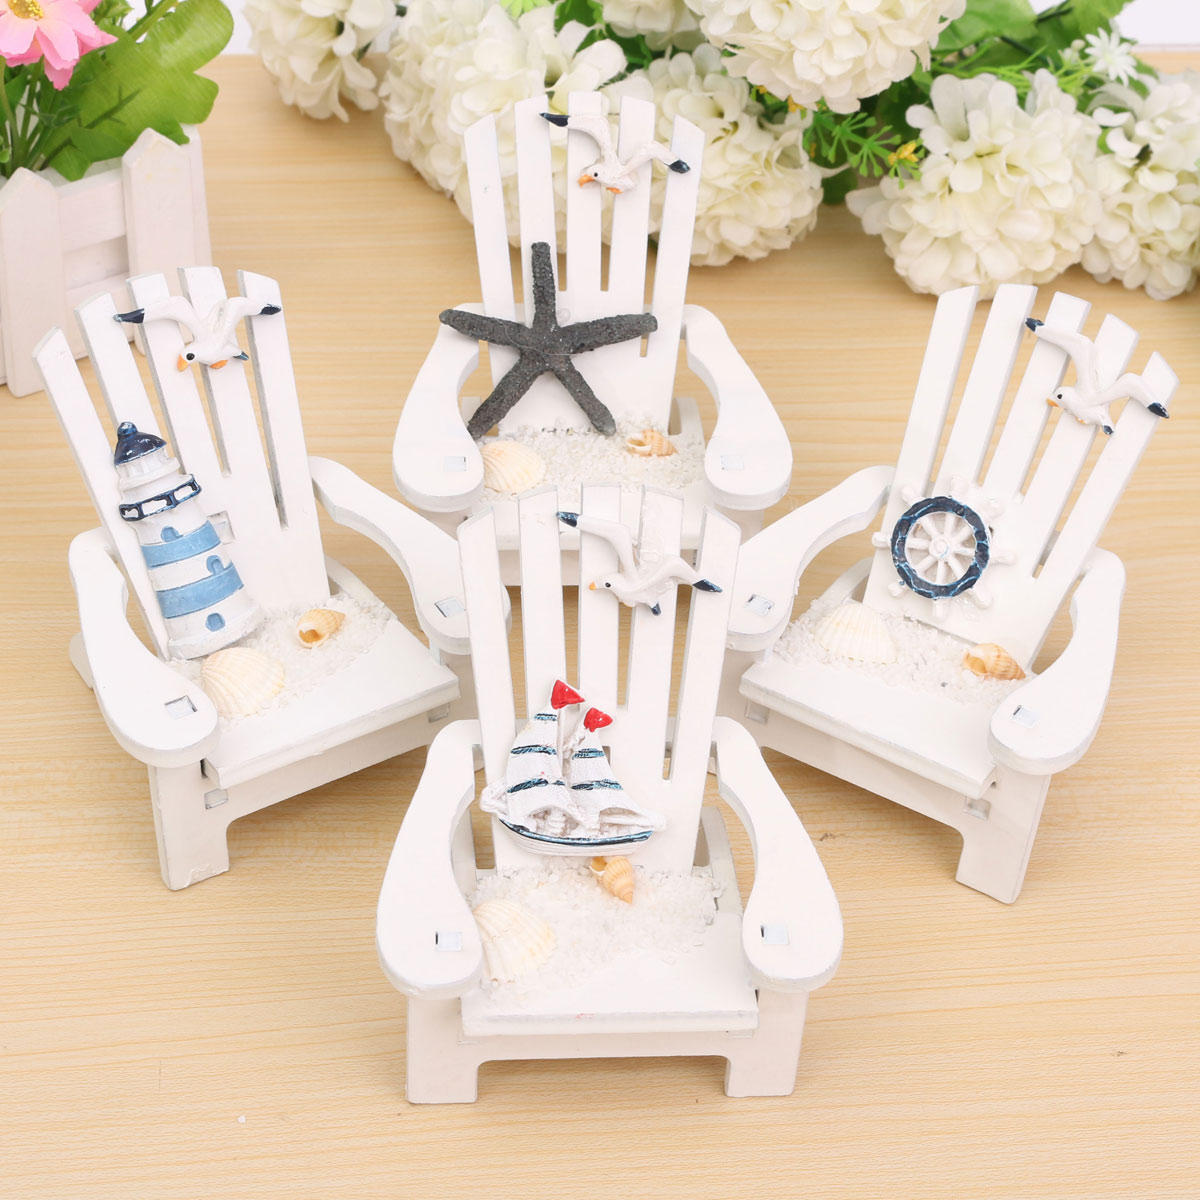 Mediterranean Style Wooden Mini Chairs Desktop Ornaments Home Garden Decoration Furnishings - 1